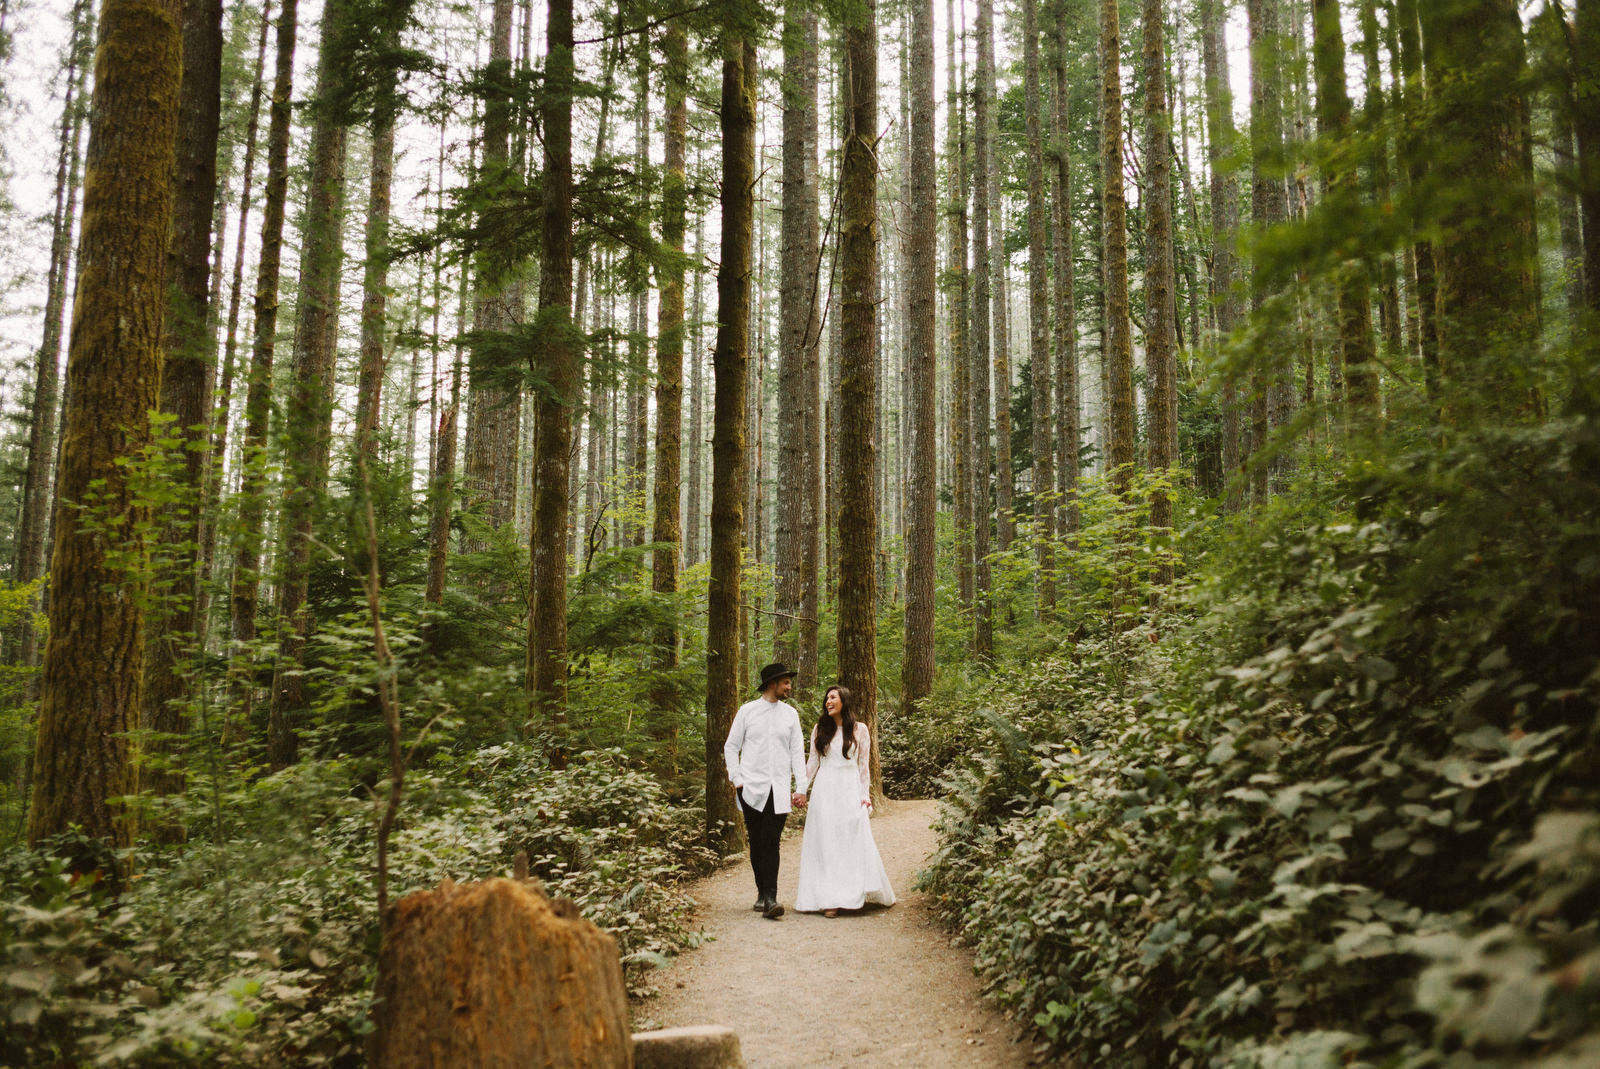 athena-and-camron-seattle-elopement-wedding-benj-haisch-rattlesnake-lake-christian-couple-goals27